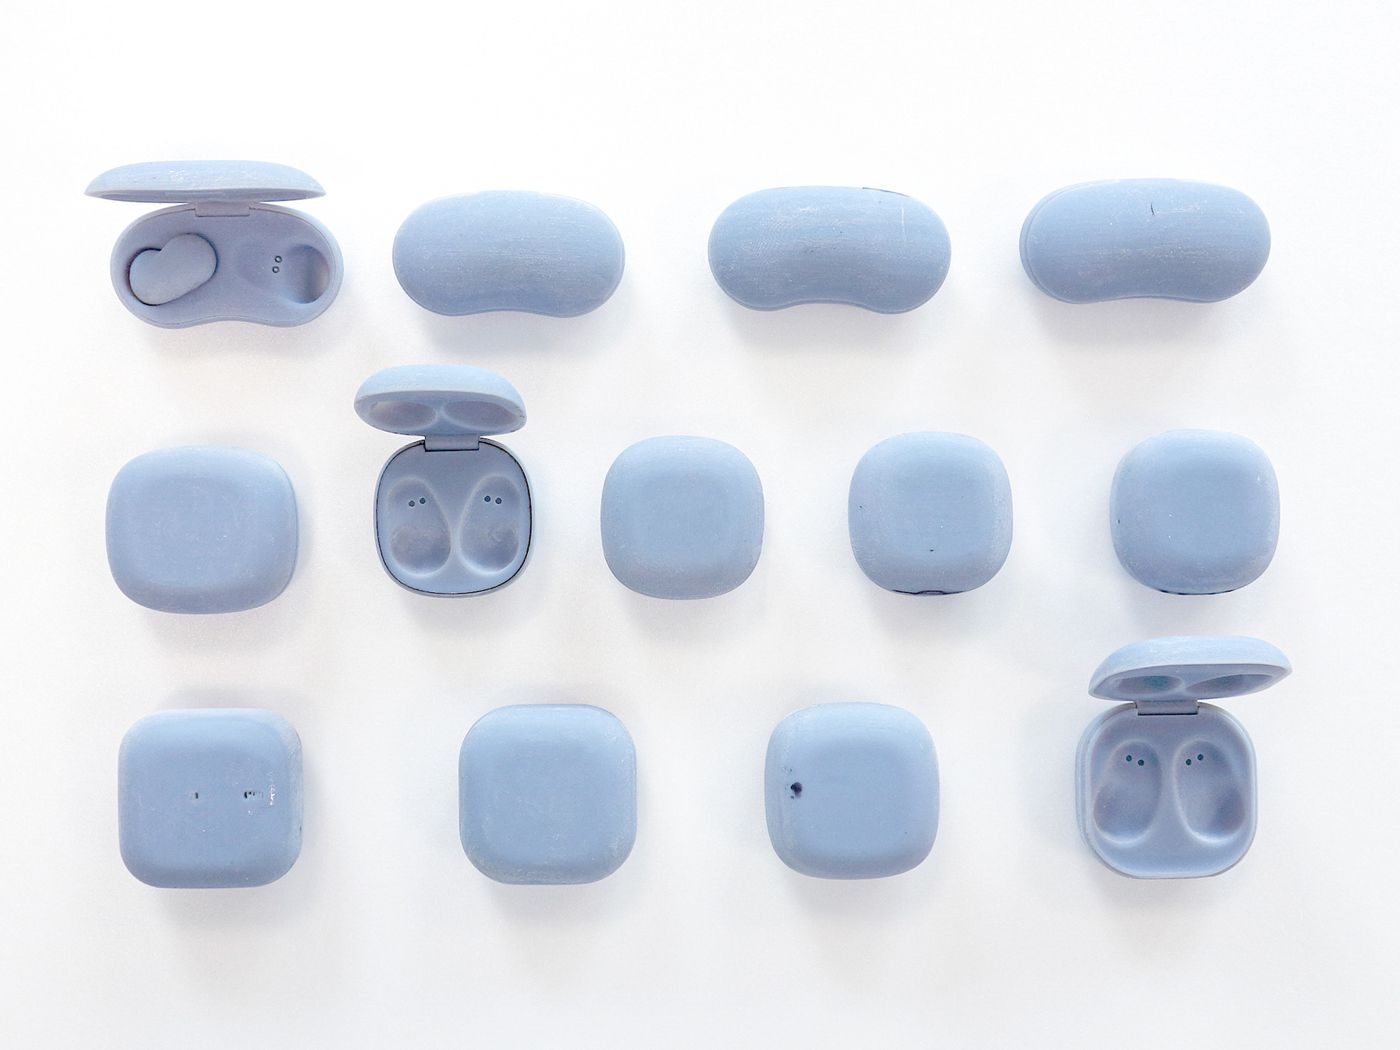 How Samsung S Beans Broke The Mold Of Wireless Earbuds The Verge Galaxy buds skins & wraps. wireless earbuds